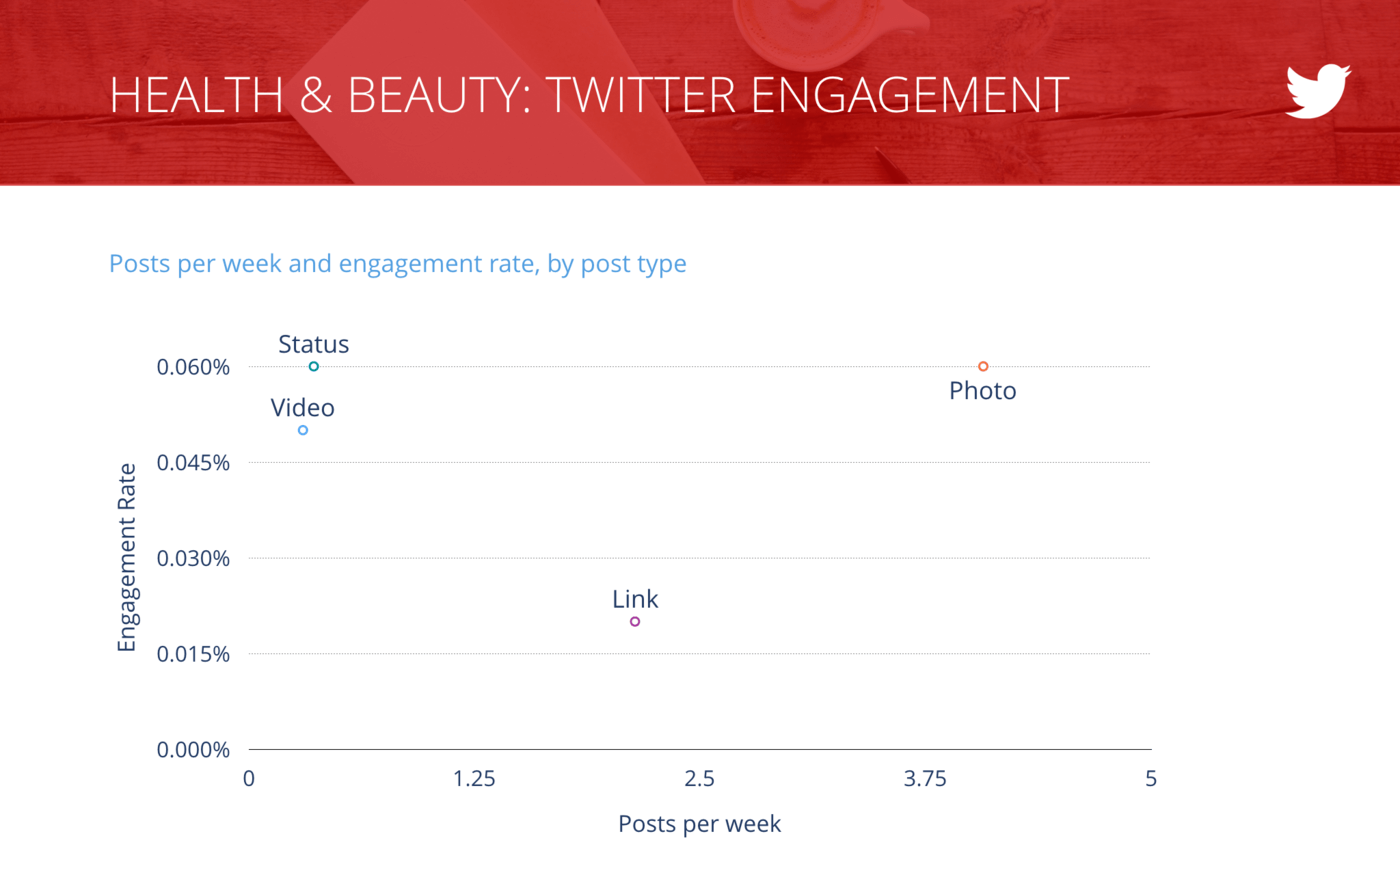 slide for Tweets per Week vs. Engagement Rate per Tweet, Health & Beauty